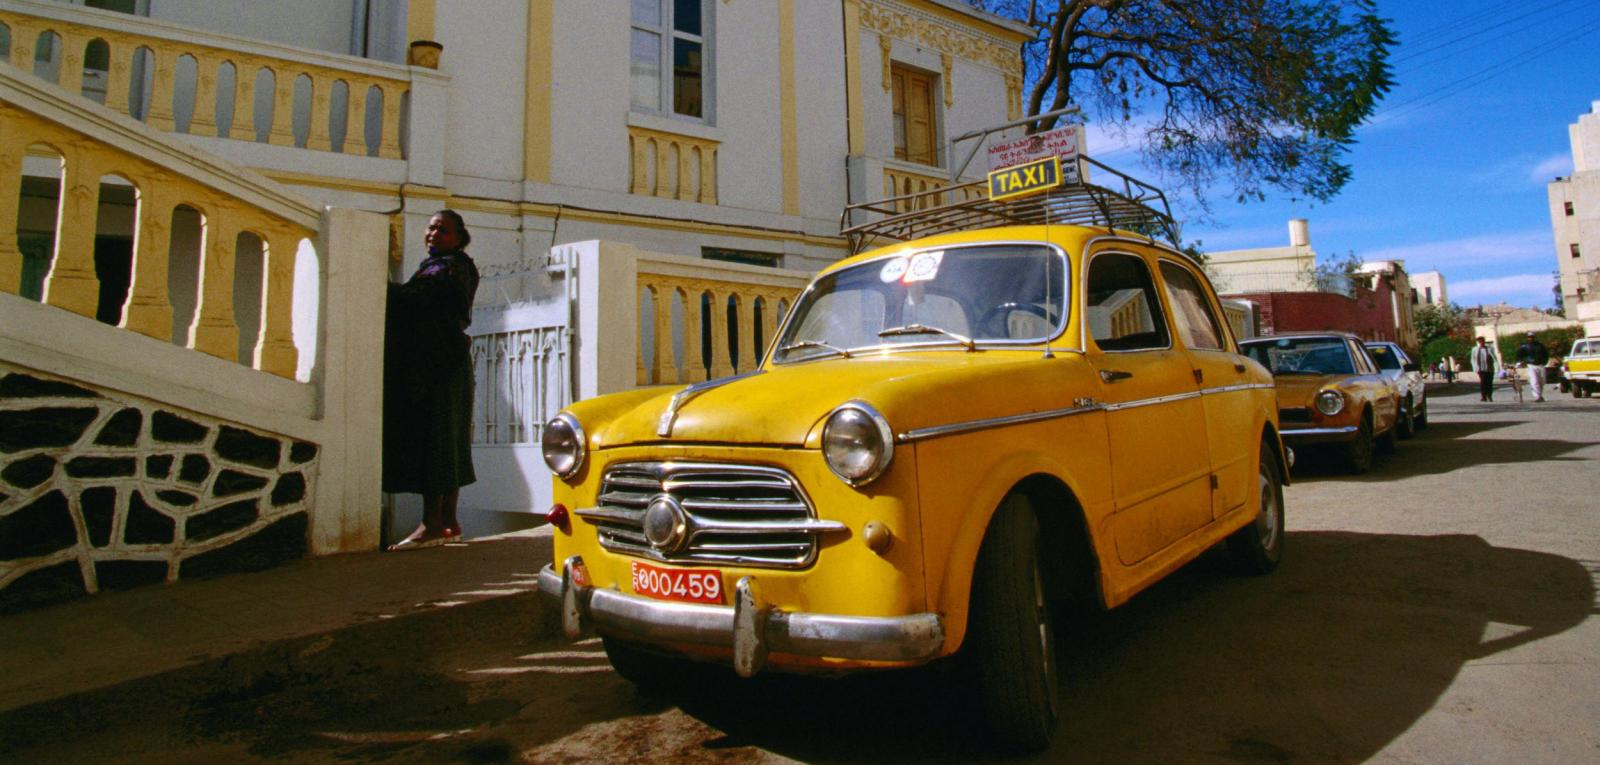 Yellow-fiat taxis ply the streets of Asmara